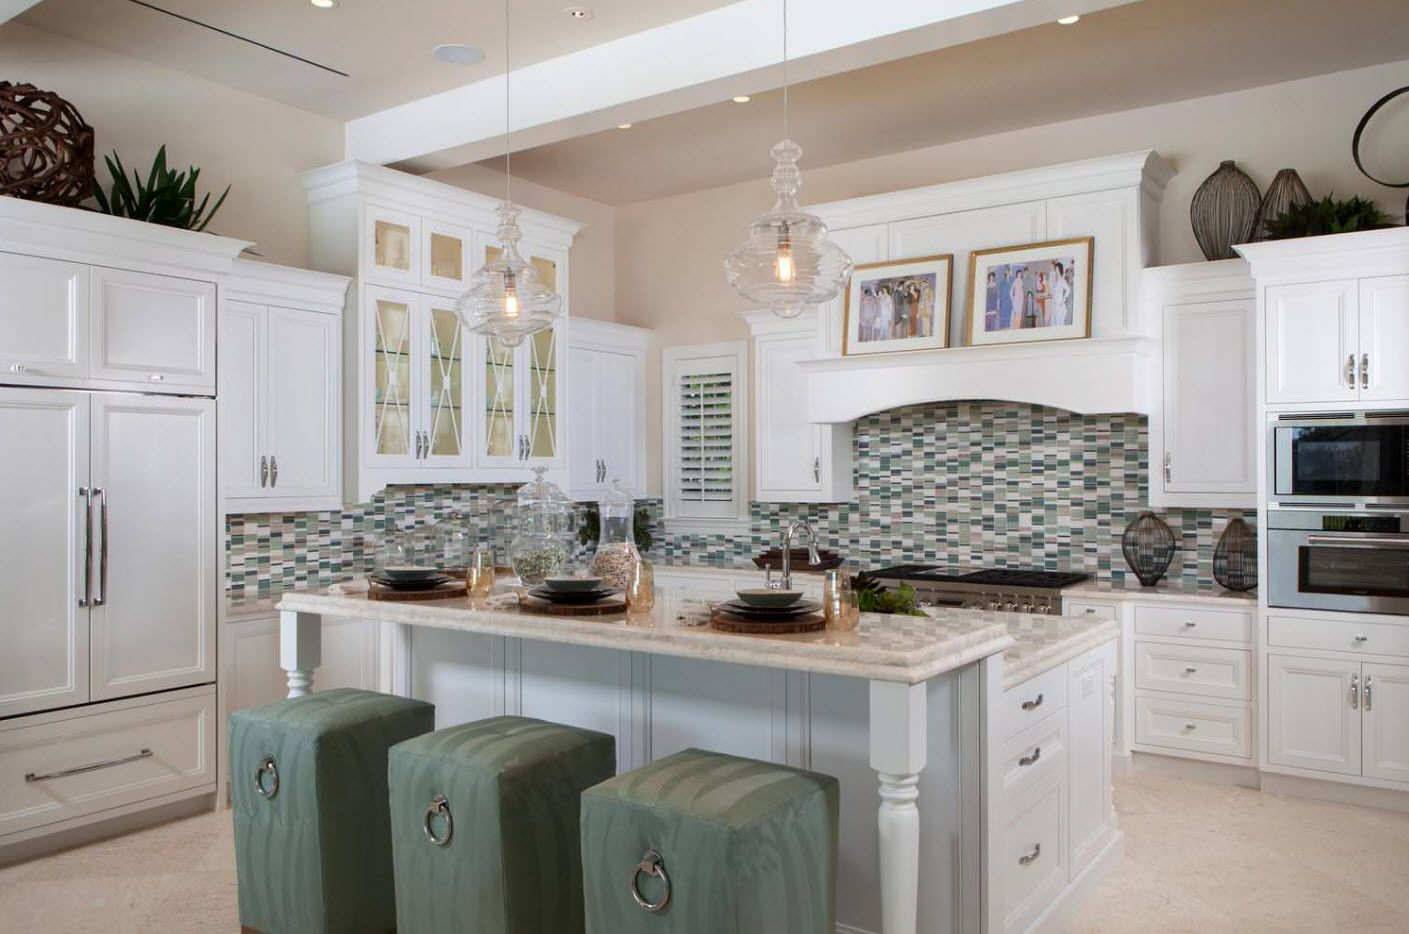 Mosaic solid splashback at the Country styled kitchen